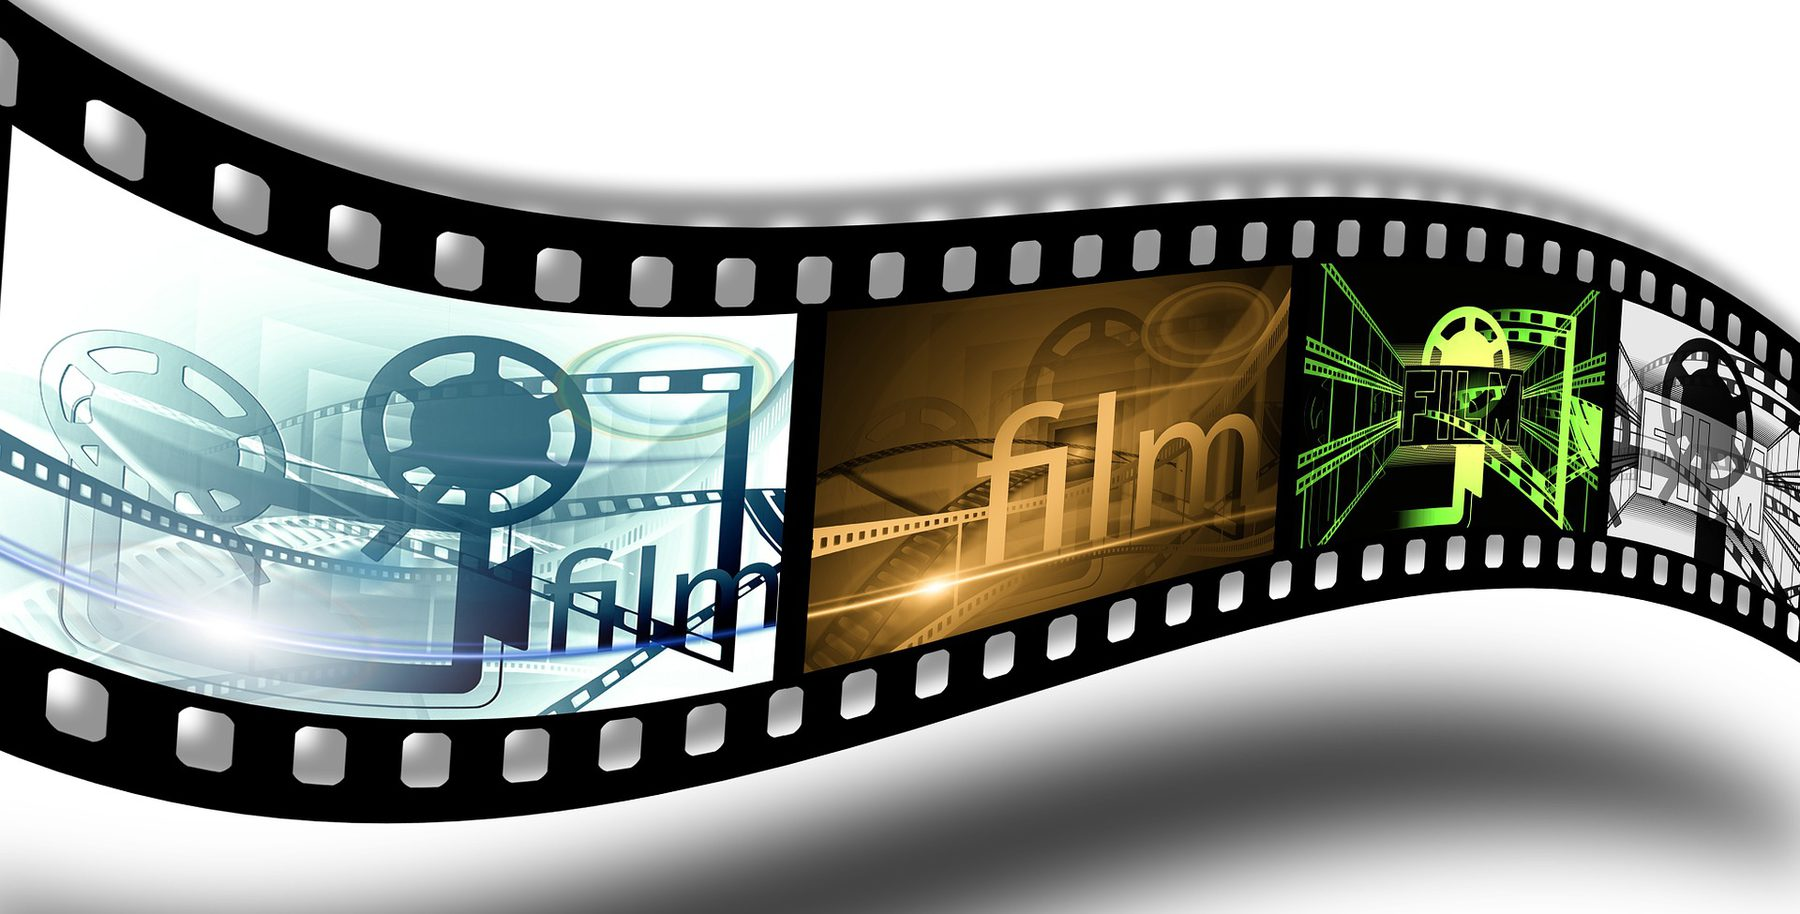 Film, Video and Photography (Sector Header: Filmstrip)